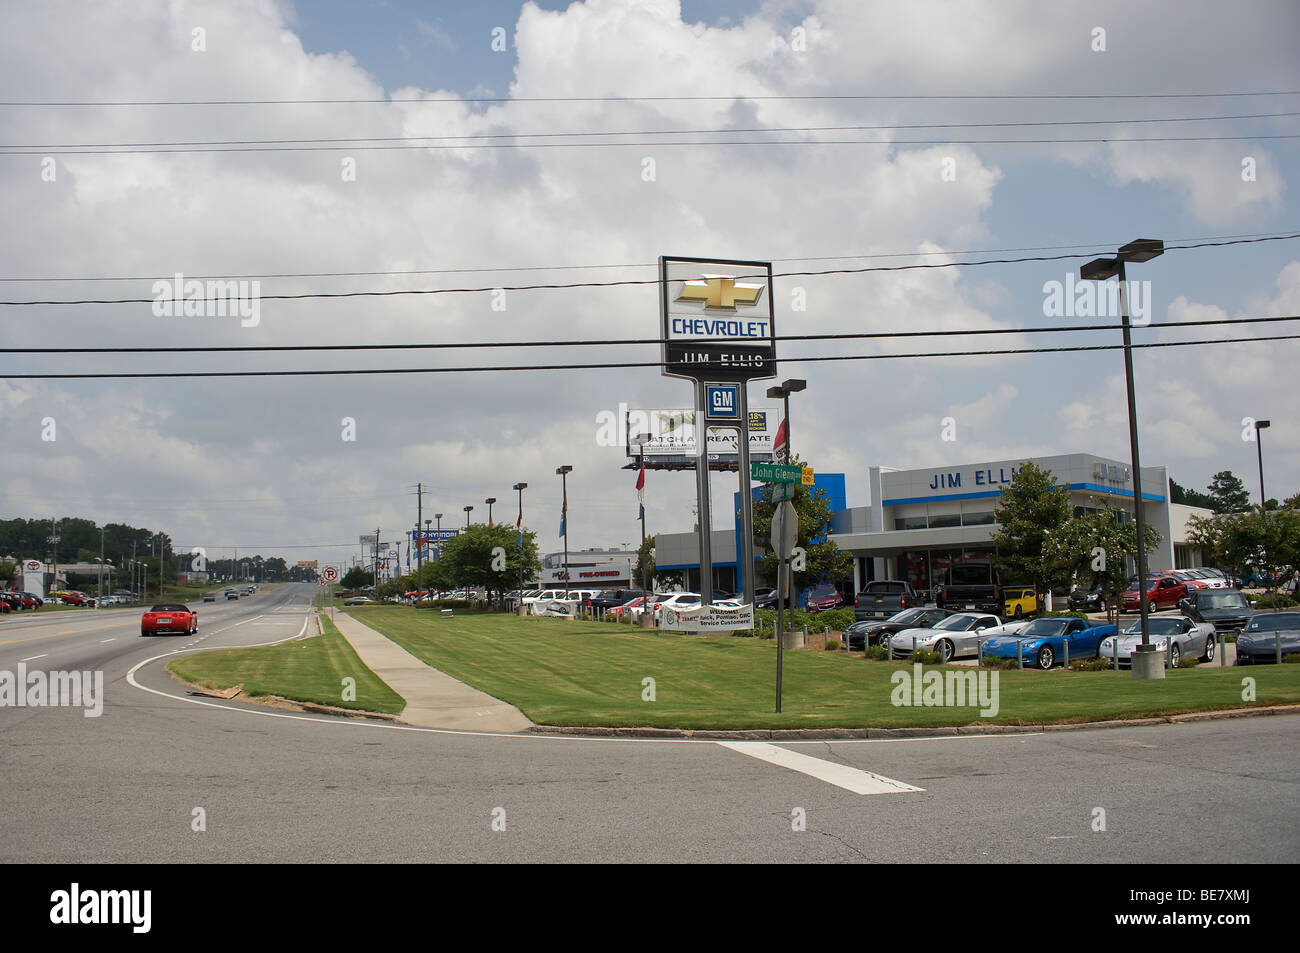 Jim Ellis Chevrolet >> Jim Ellis Chevrolet Stock Photos Jim Ellis Chevrolet Stock Images